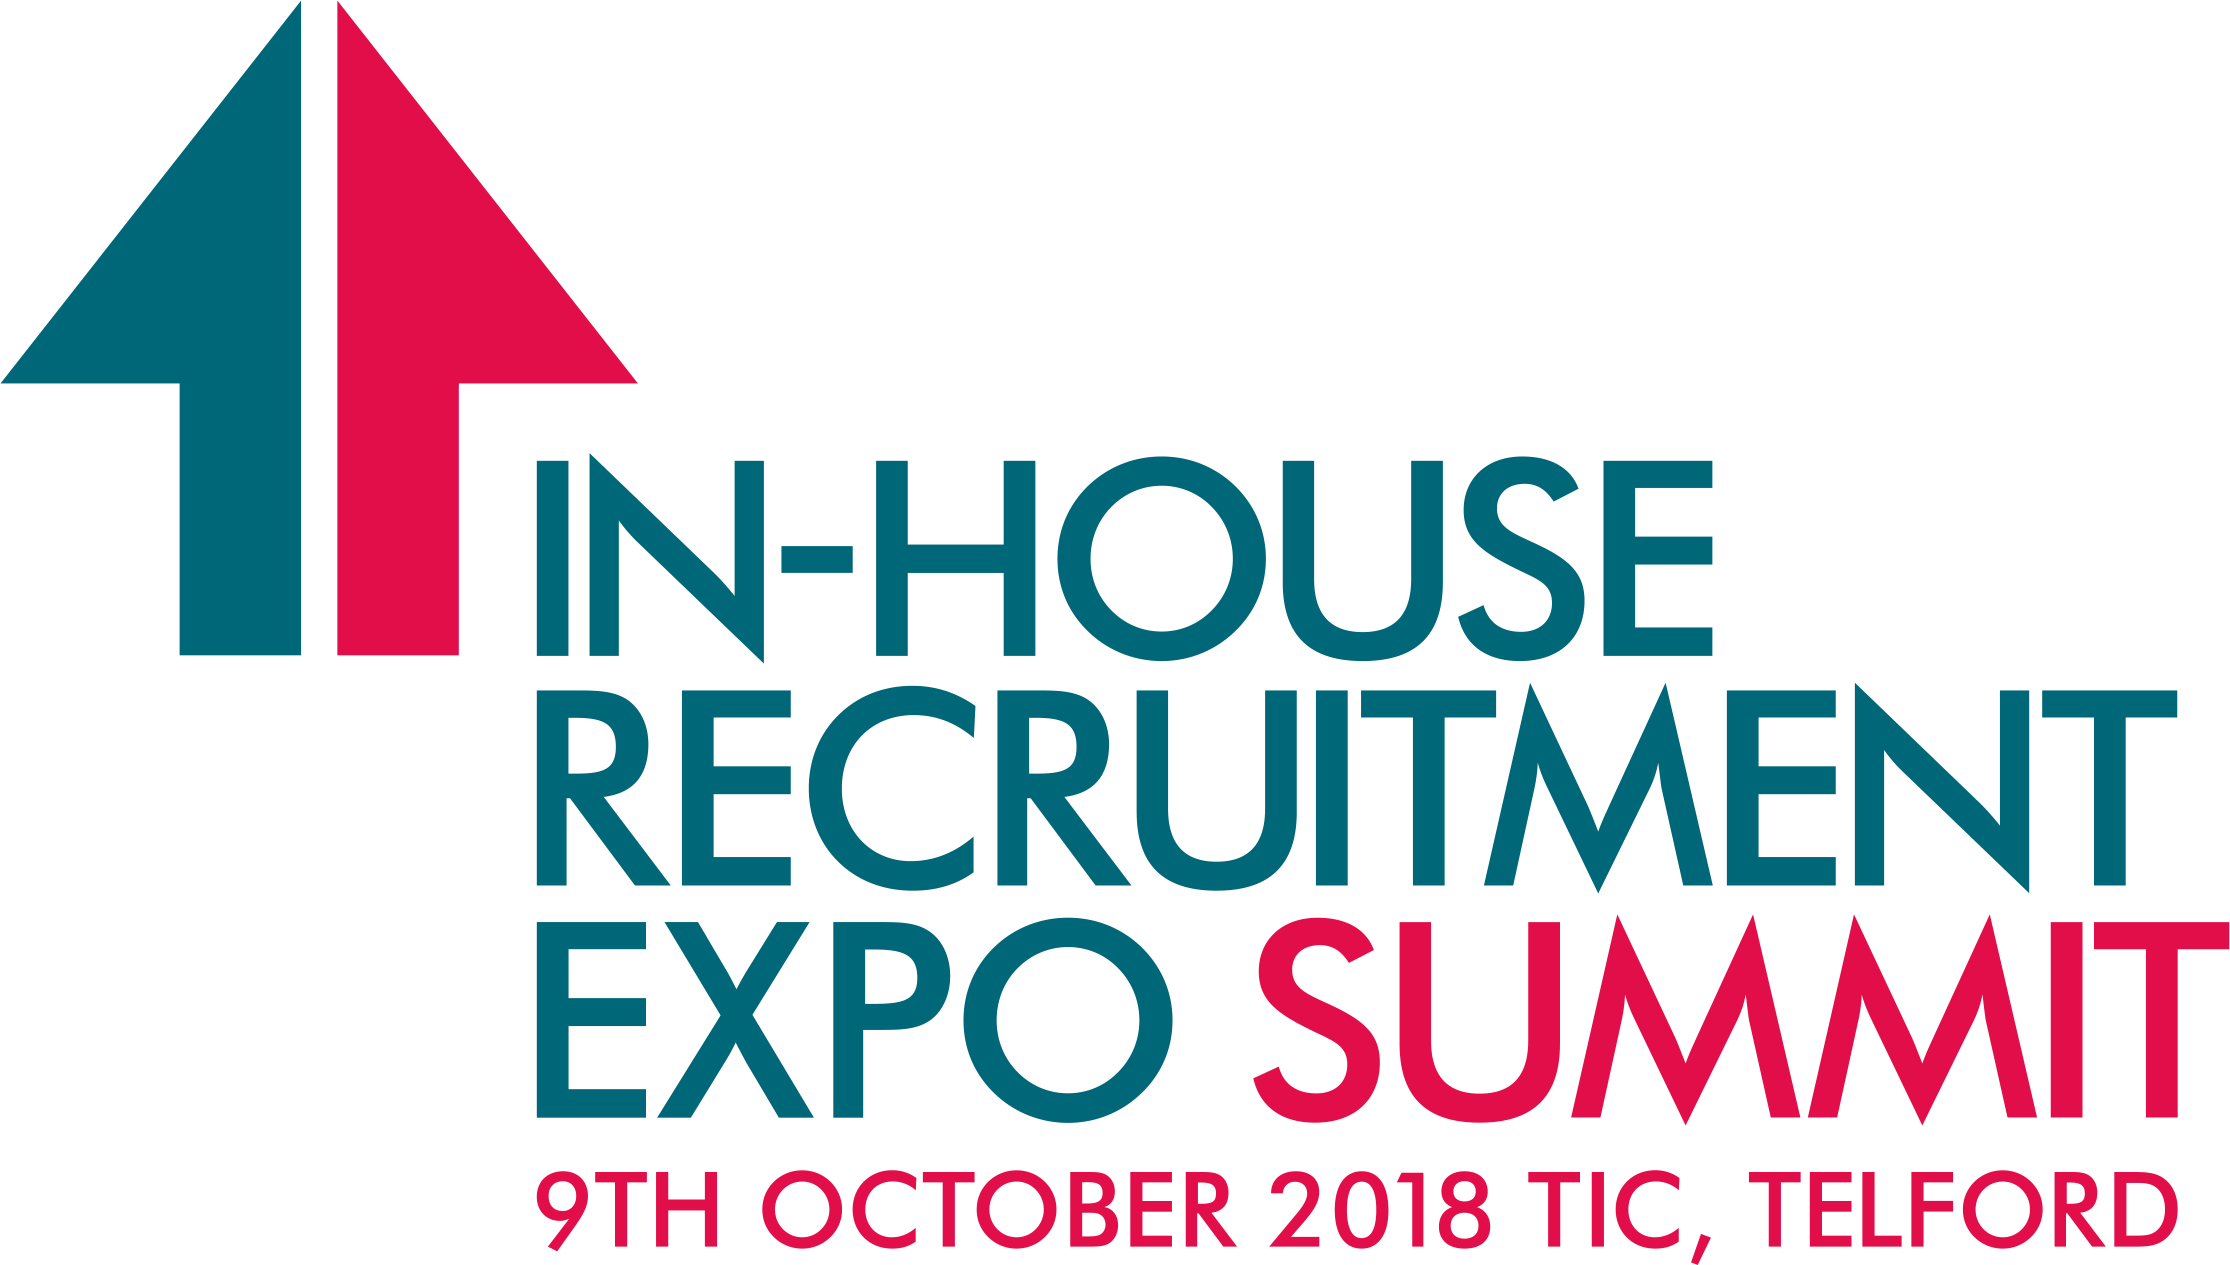 IHRE18 Summit is coming to the TIC, Telford – 9 October 2018